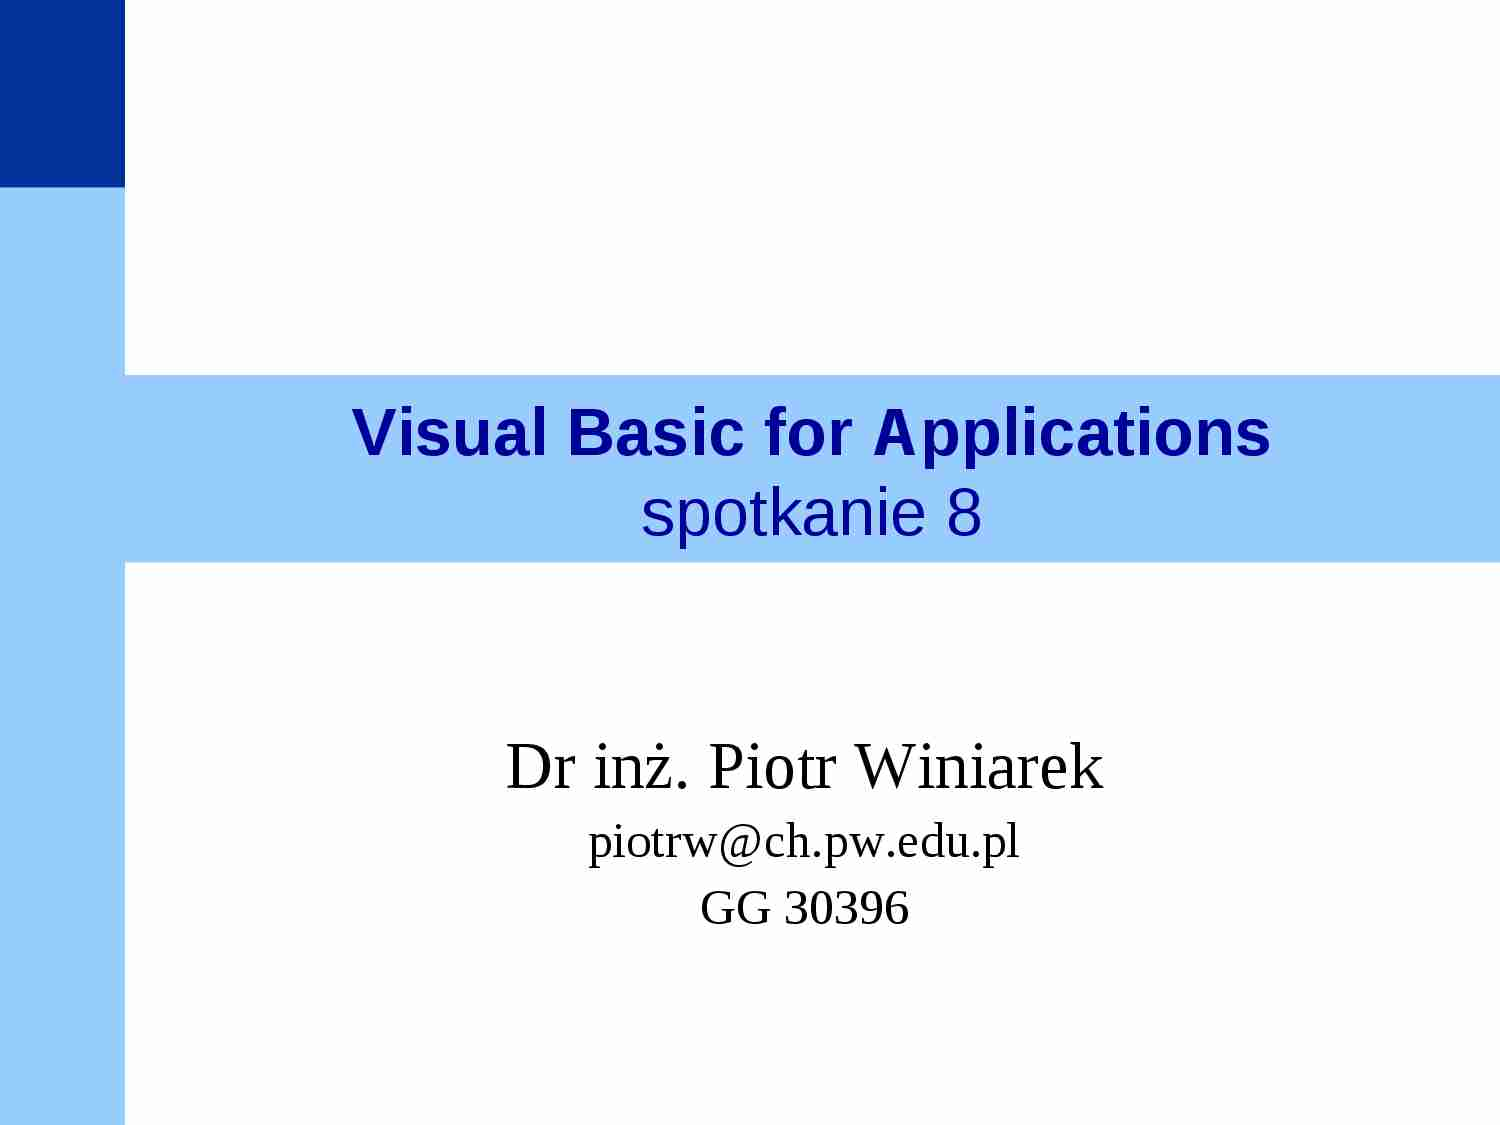 Visual Basic for Applications - prezentacja - strona 1